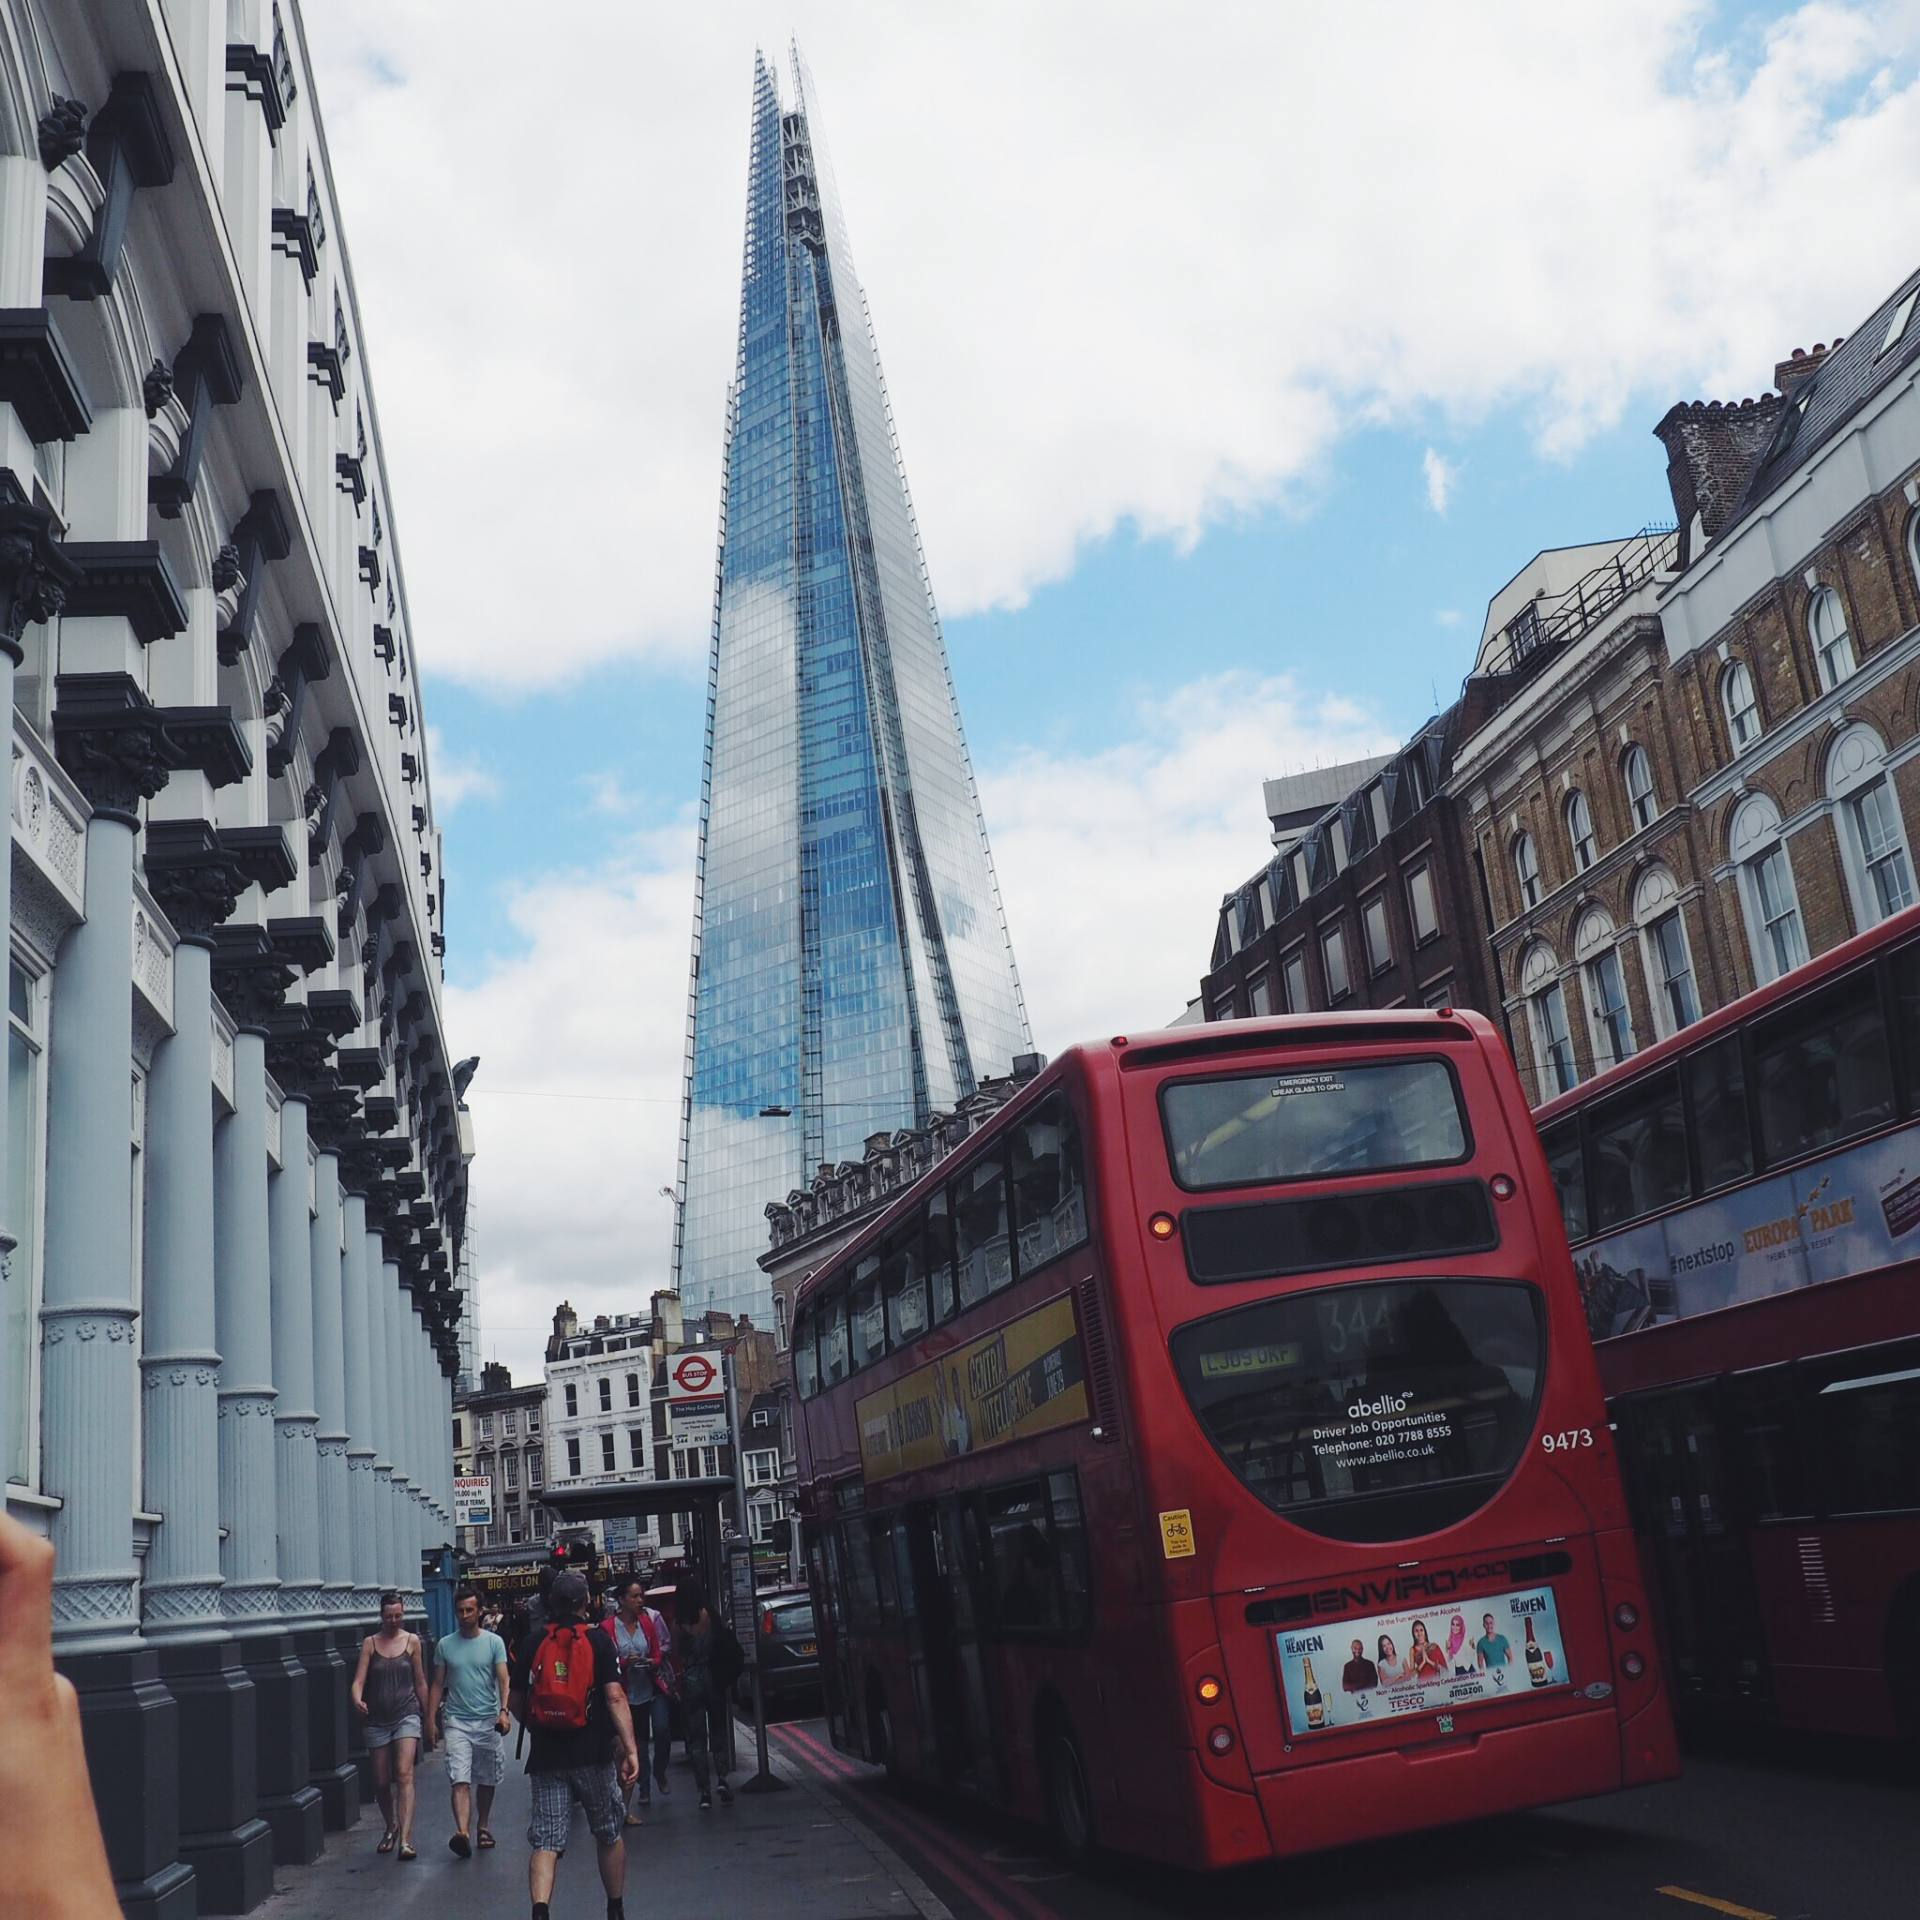 The Shard and a red bus in London